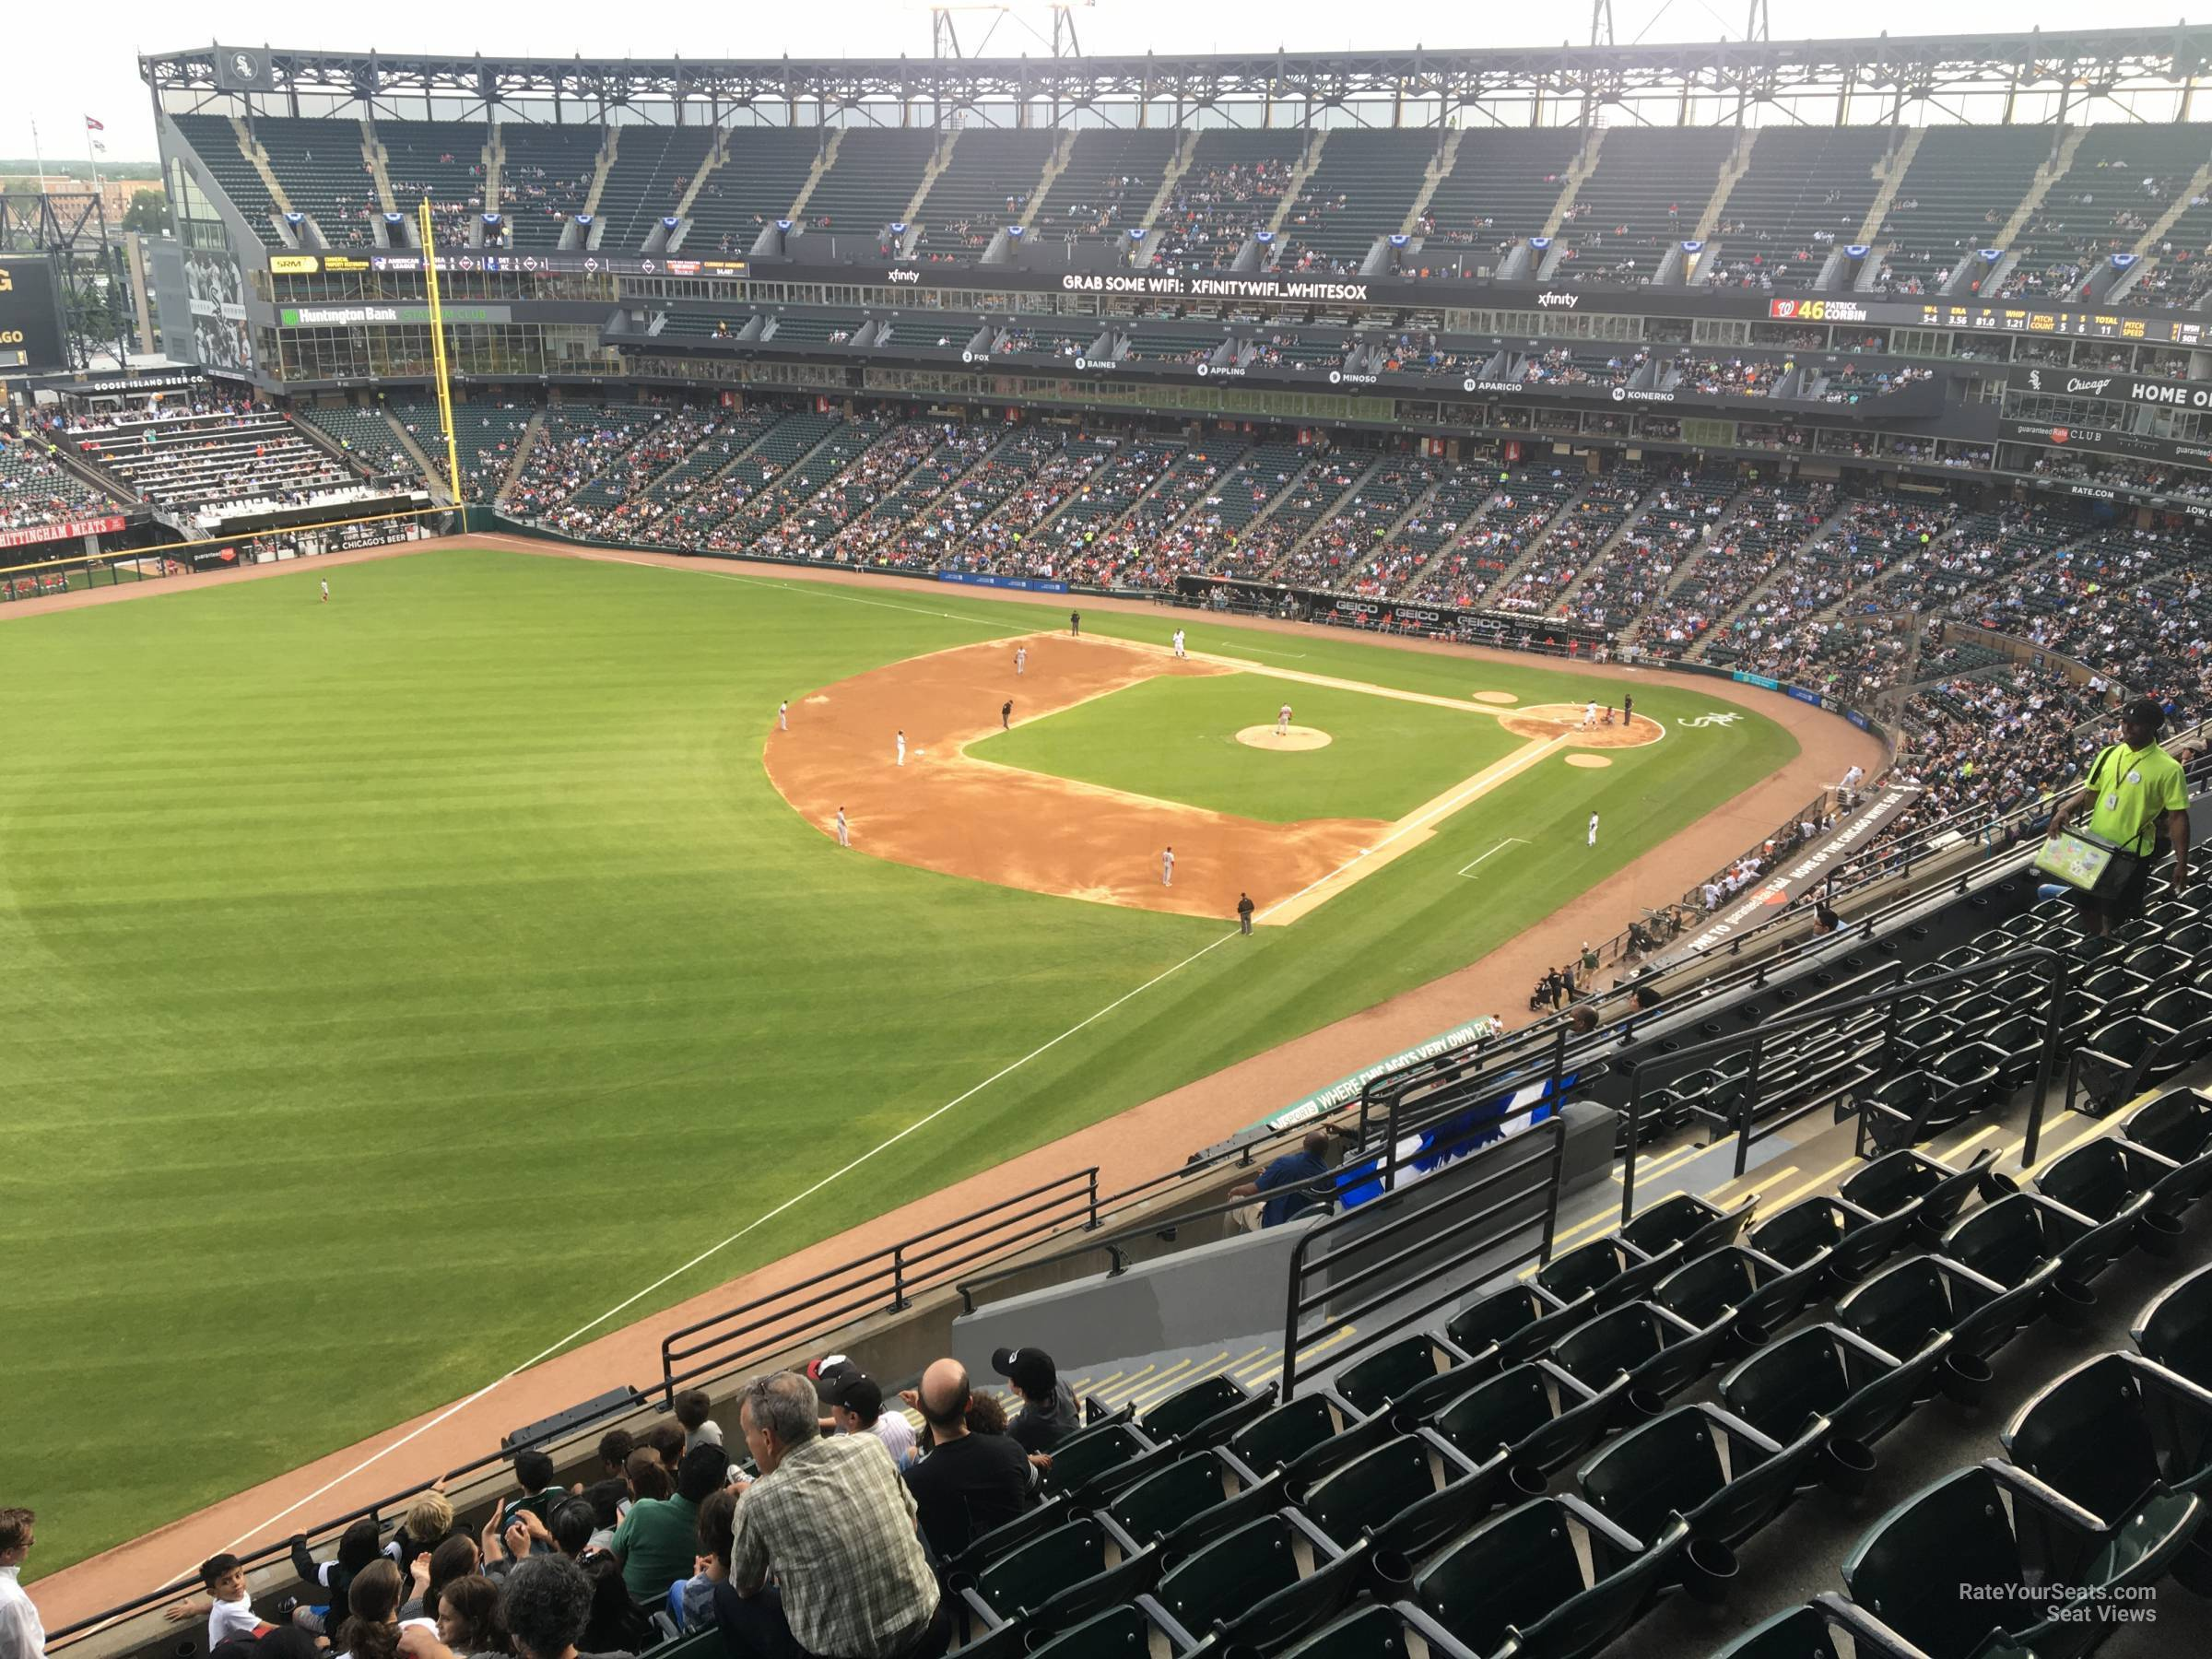 Seat View for Guaranteed Rate Field Section 552, Row 12